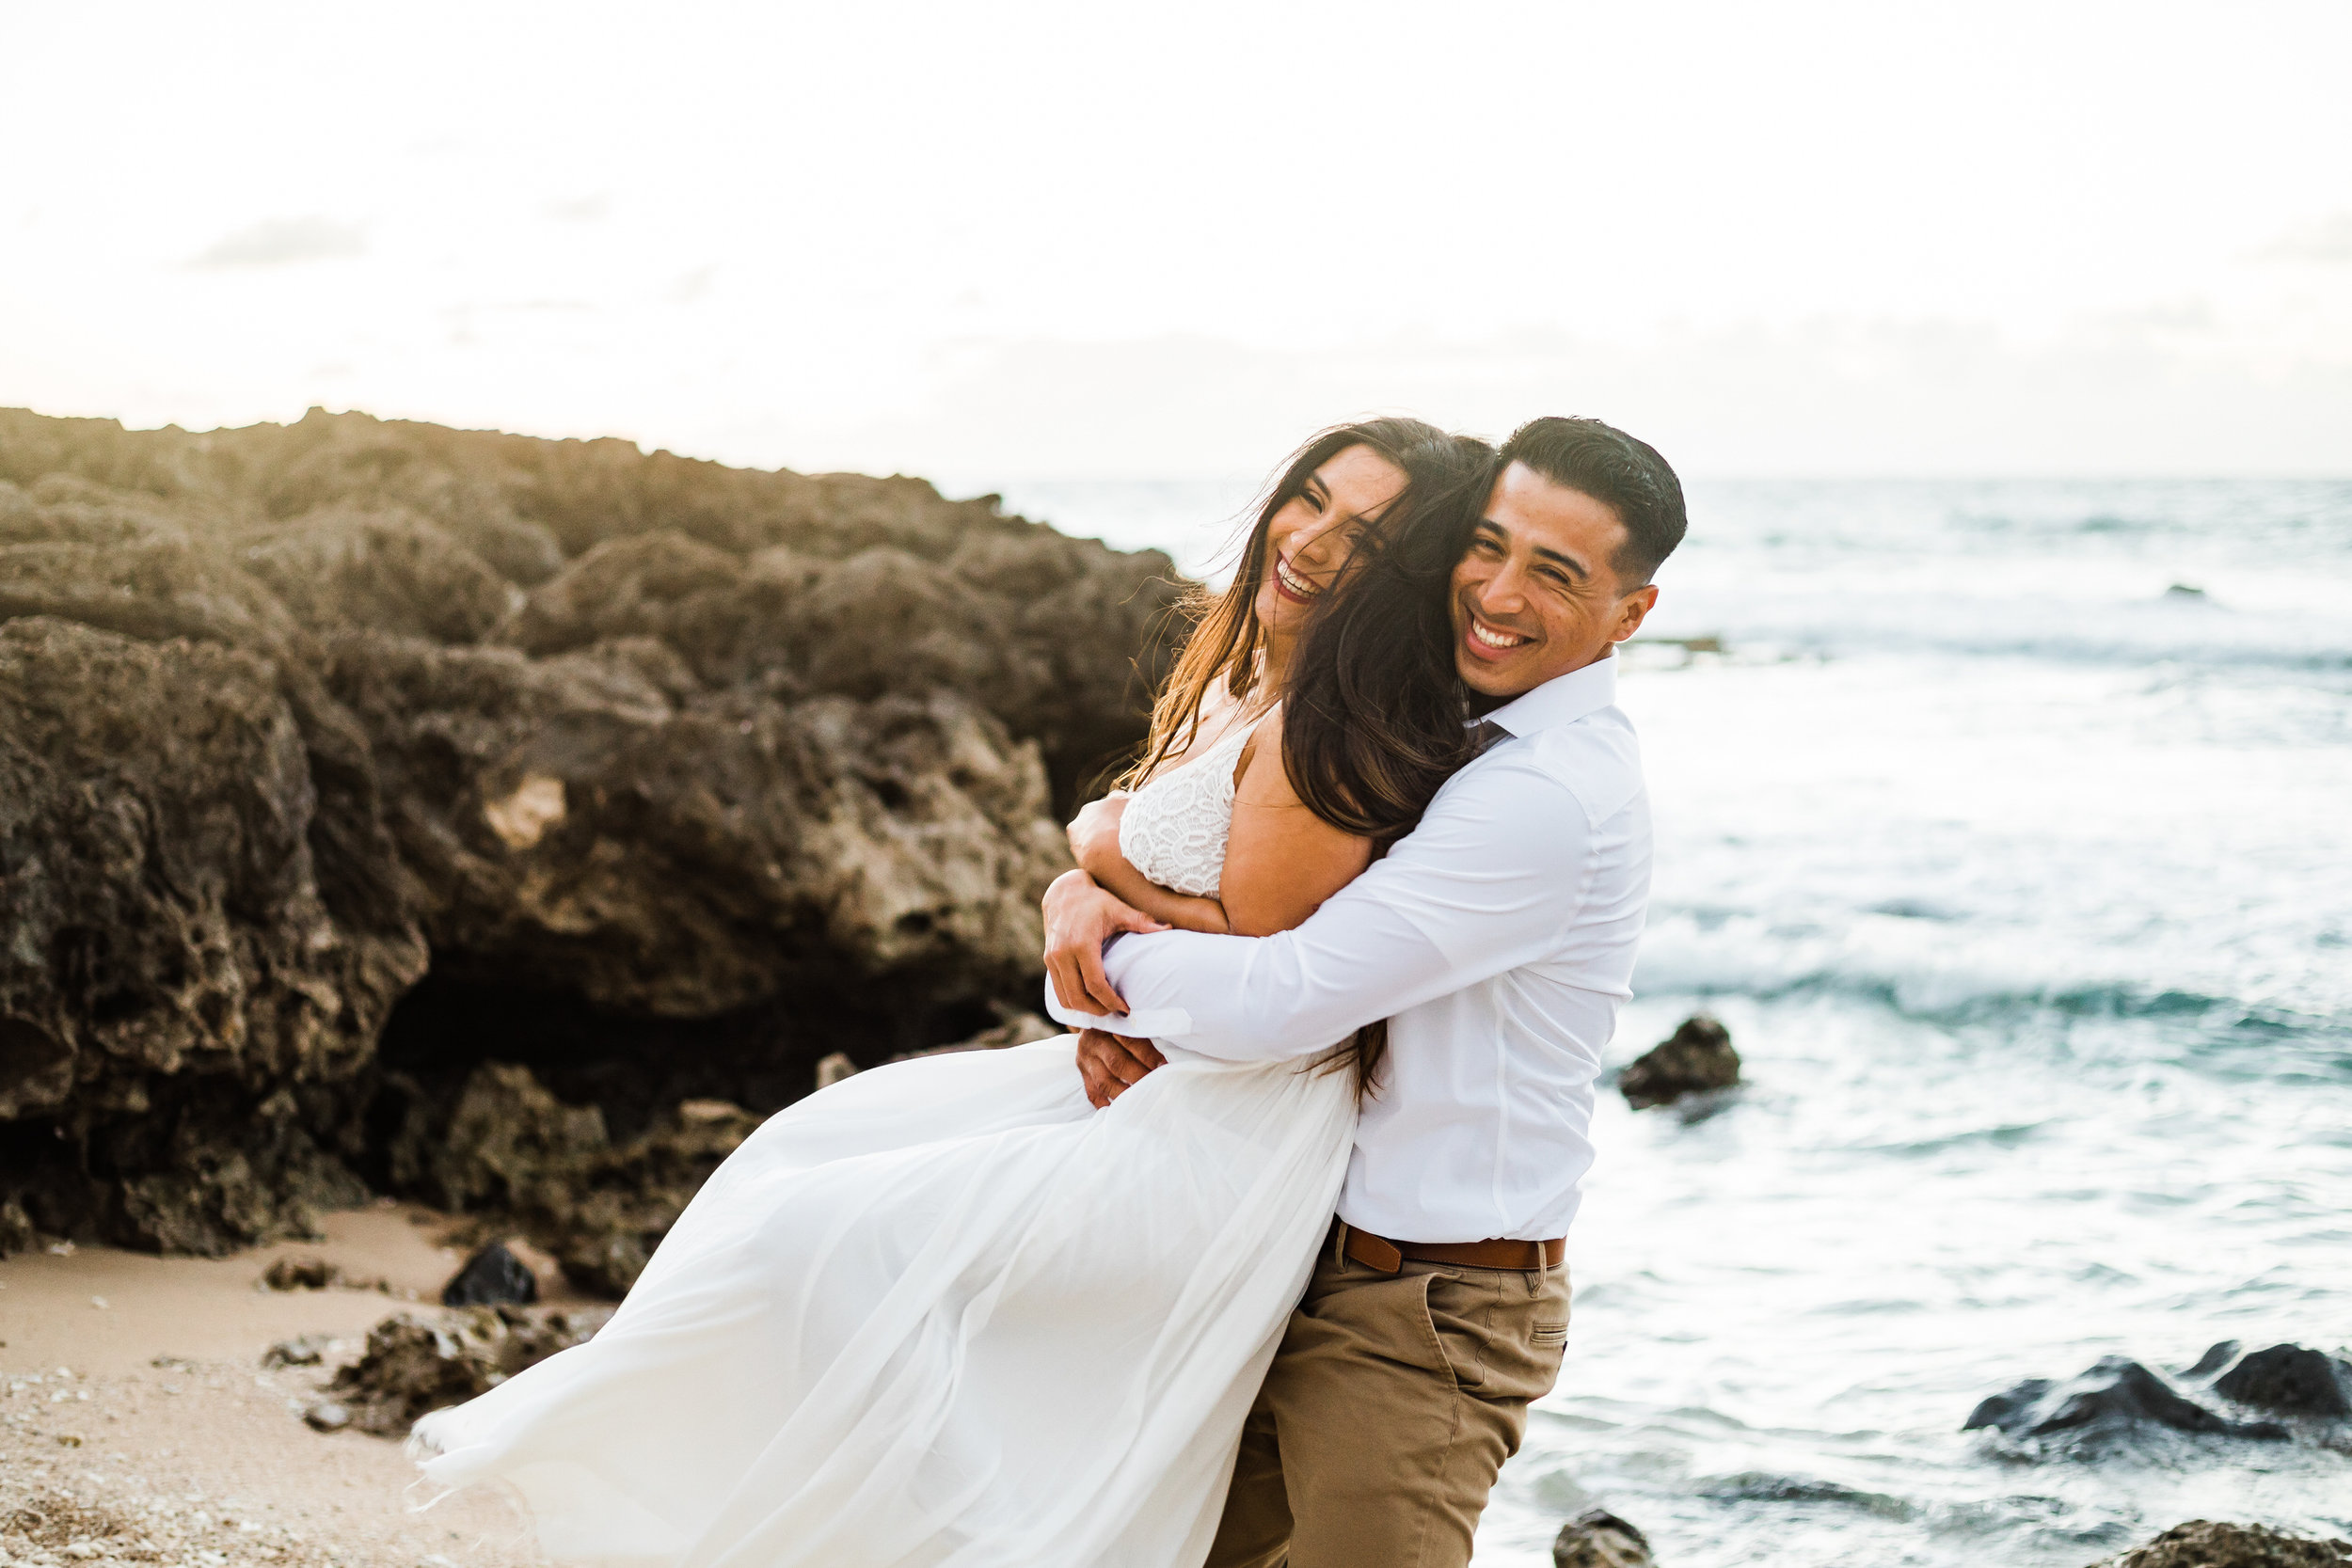 intimate-elopement-sunset-oahu-haku-20.jpg